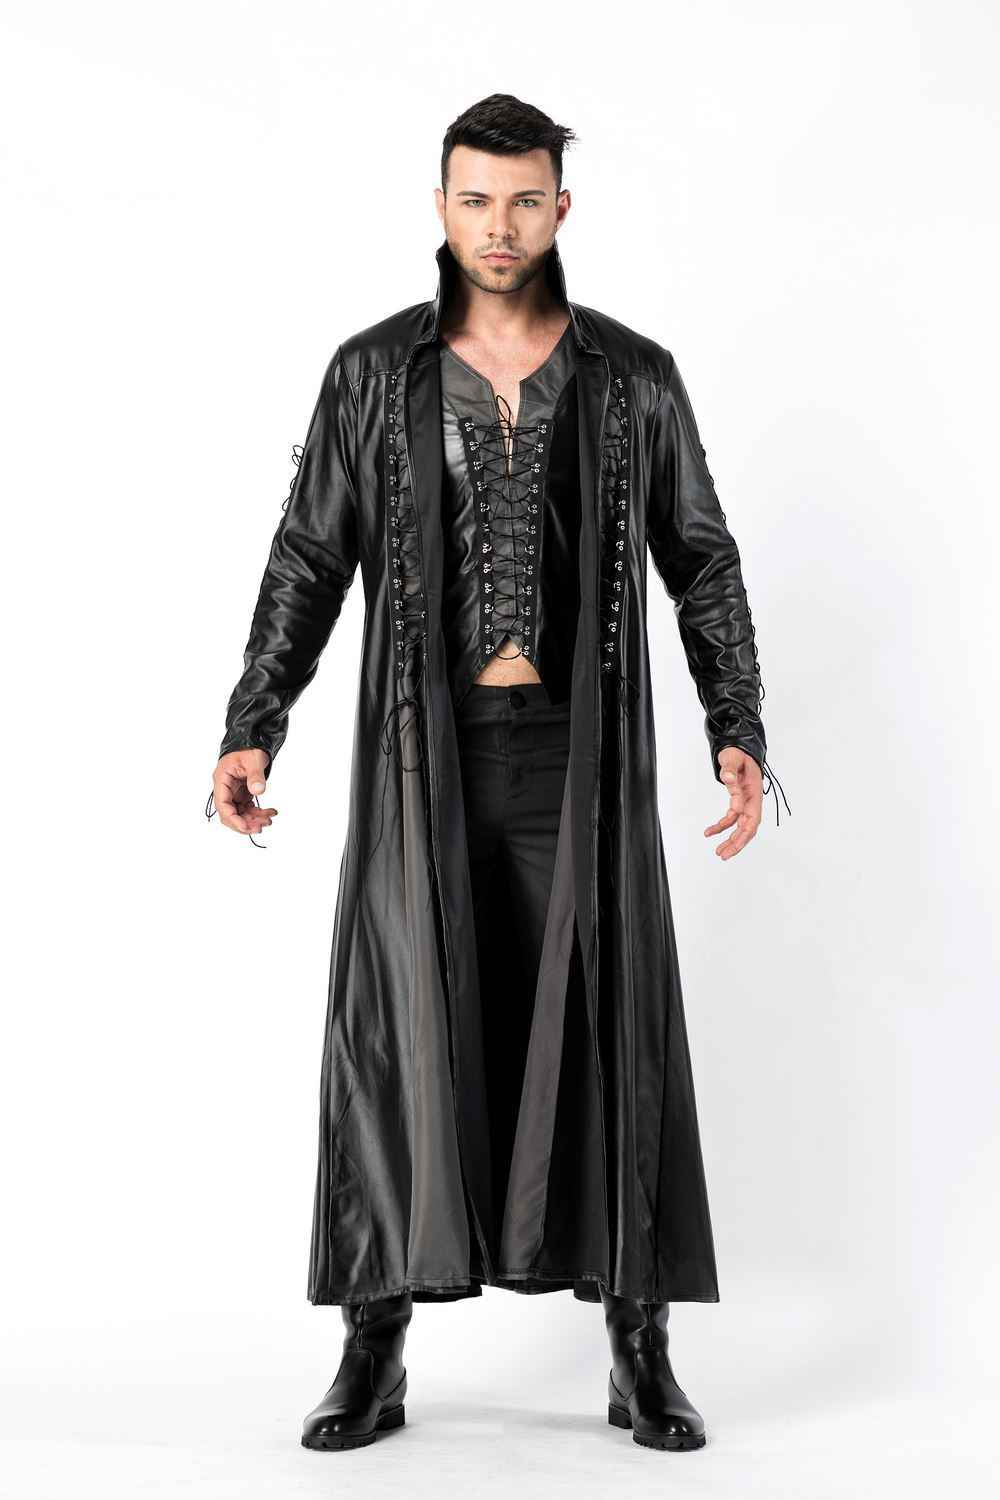 Adult Mens Dracula Costume Count Vampire Gothic Halloween Fancy Dress Outfit